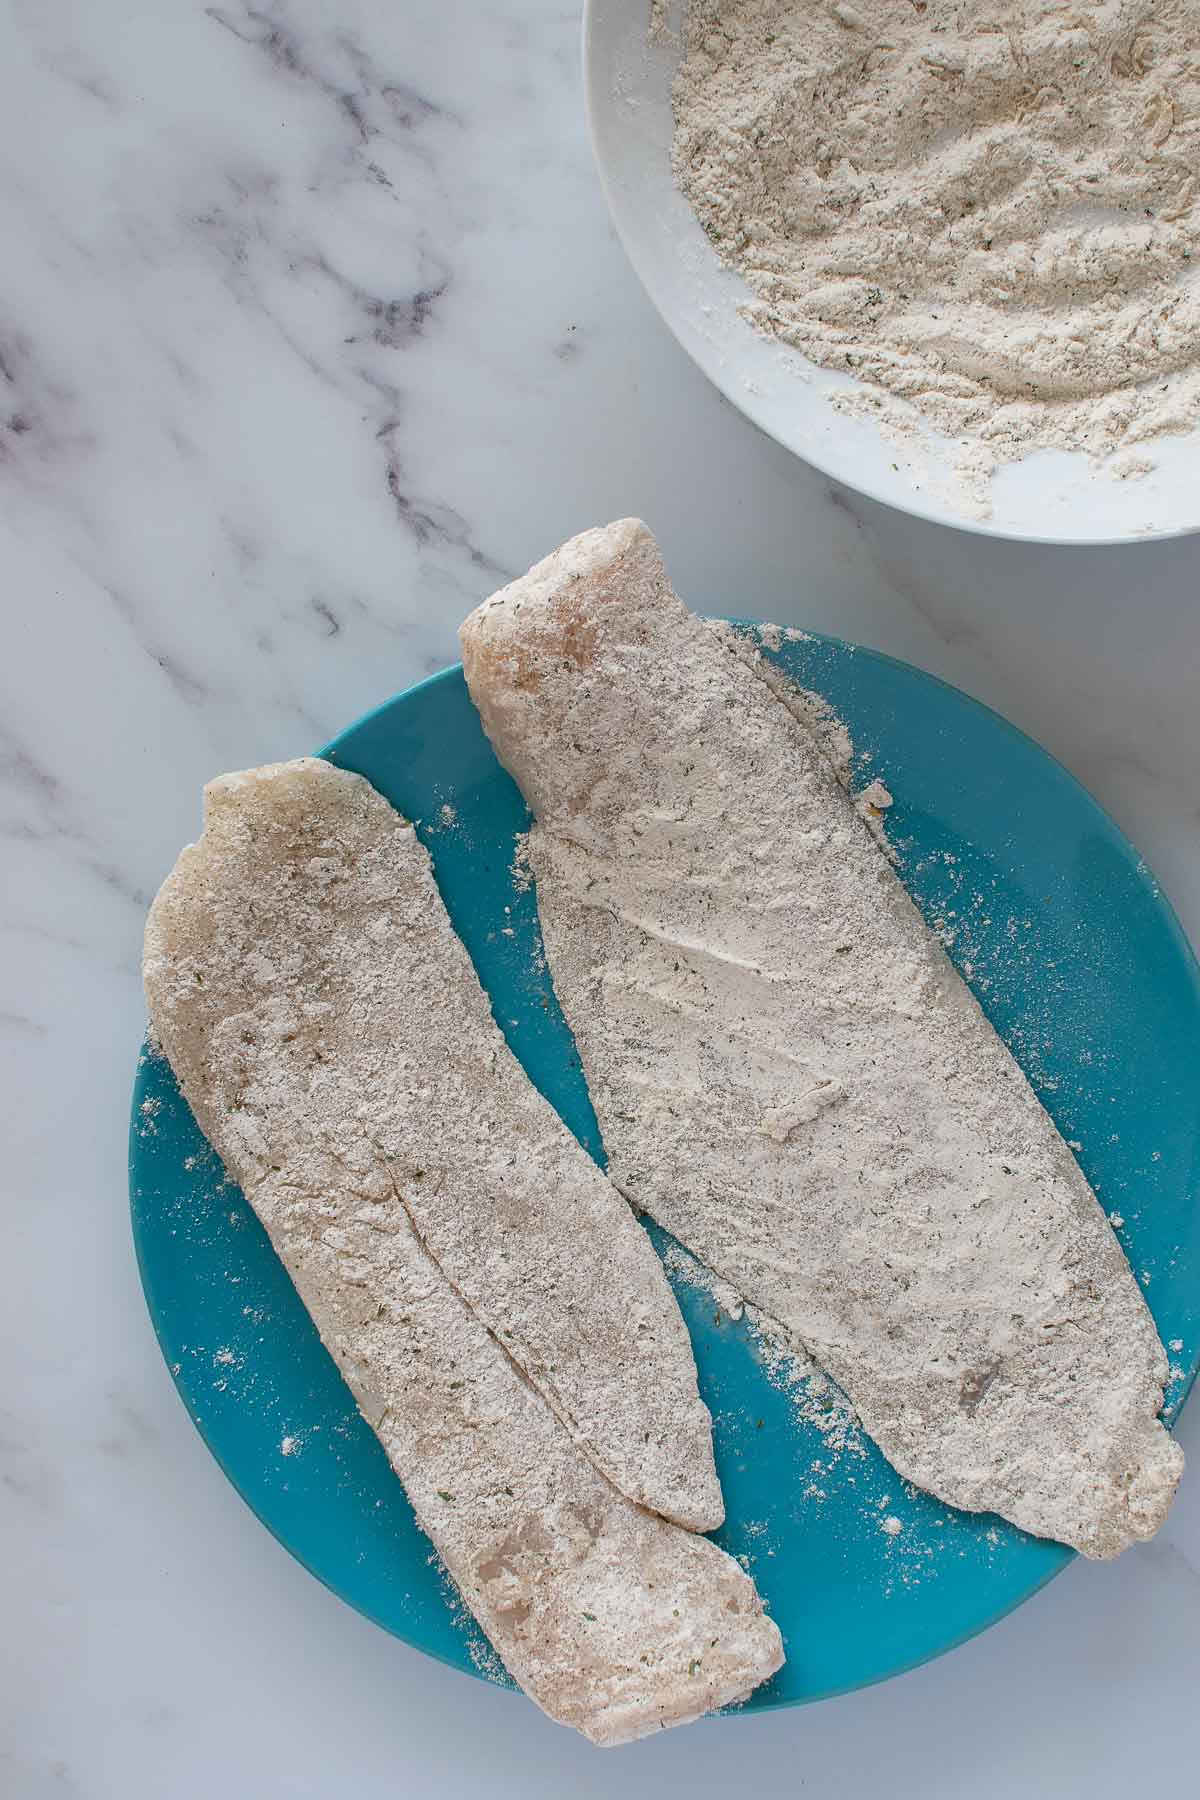 Hake fillets coated in flour and seasoning.